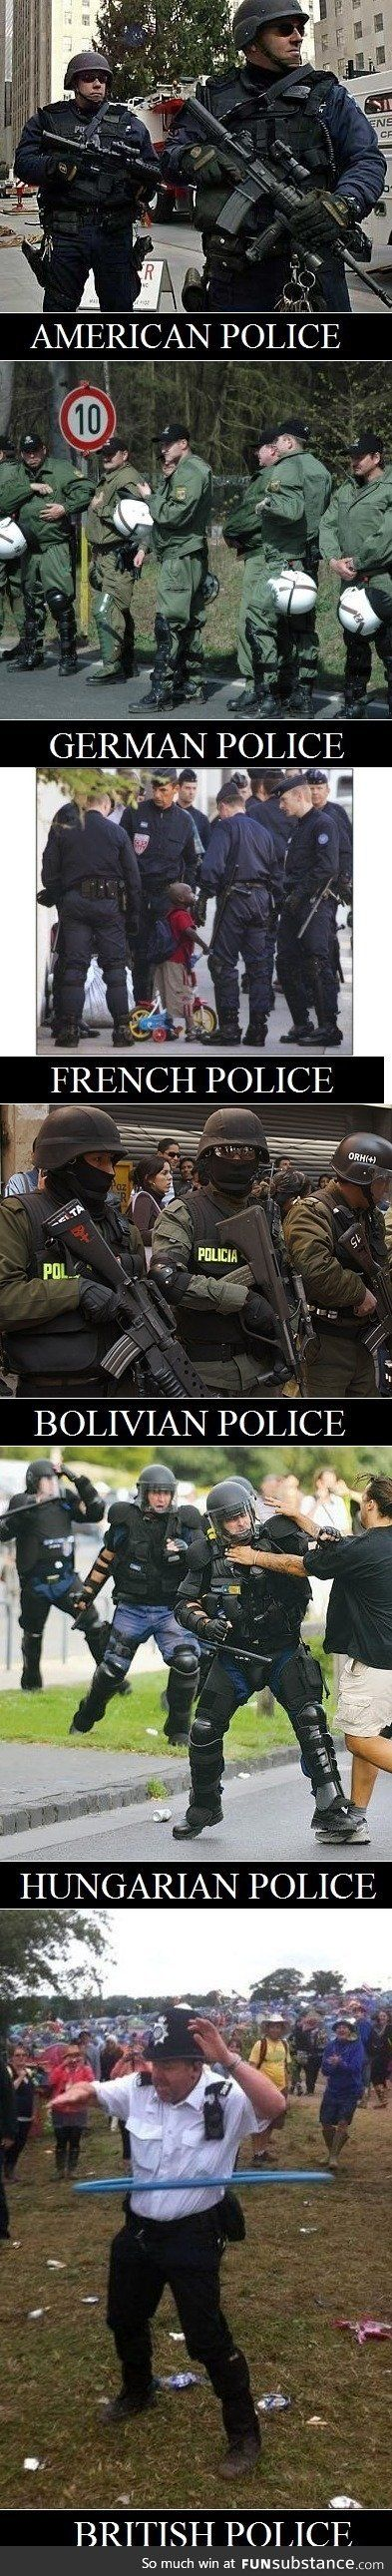 Police in different countries - FunSubstance